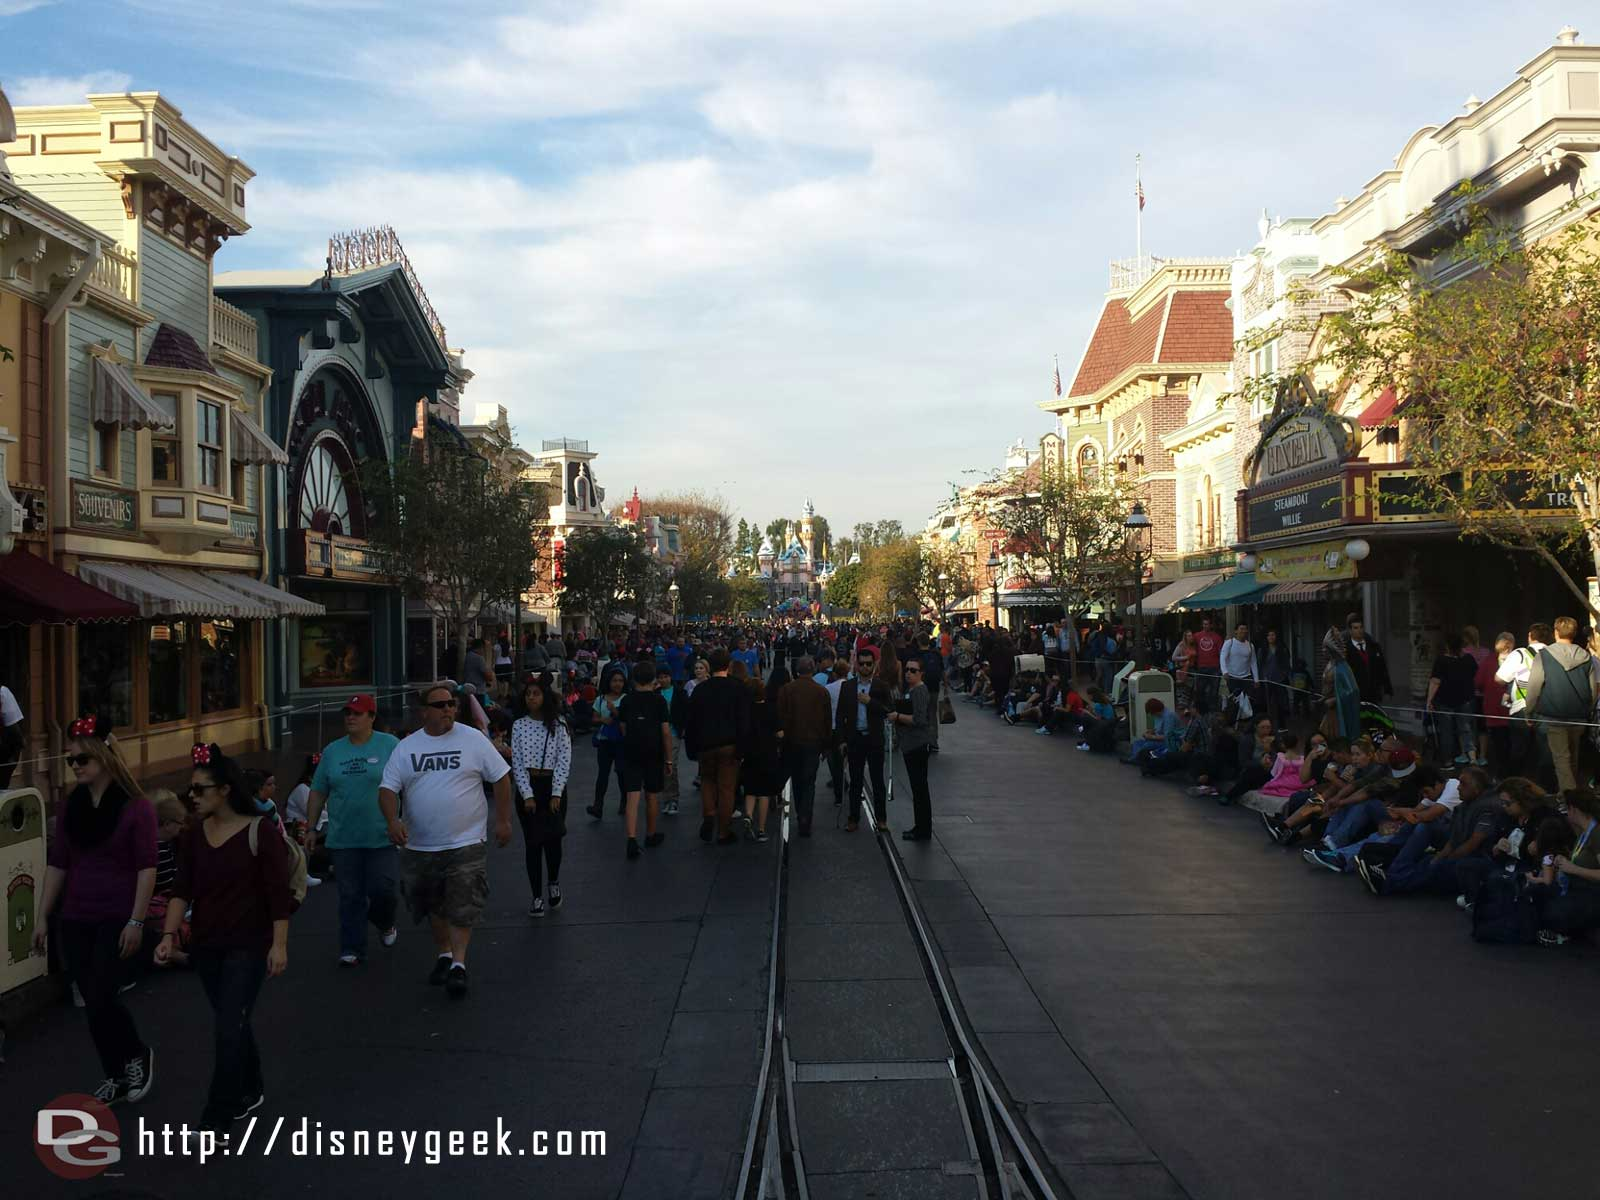 Most signs of Christmas are gone from Main Street USA #Disneyland